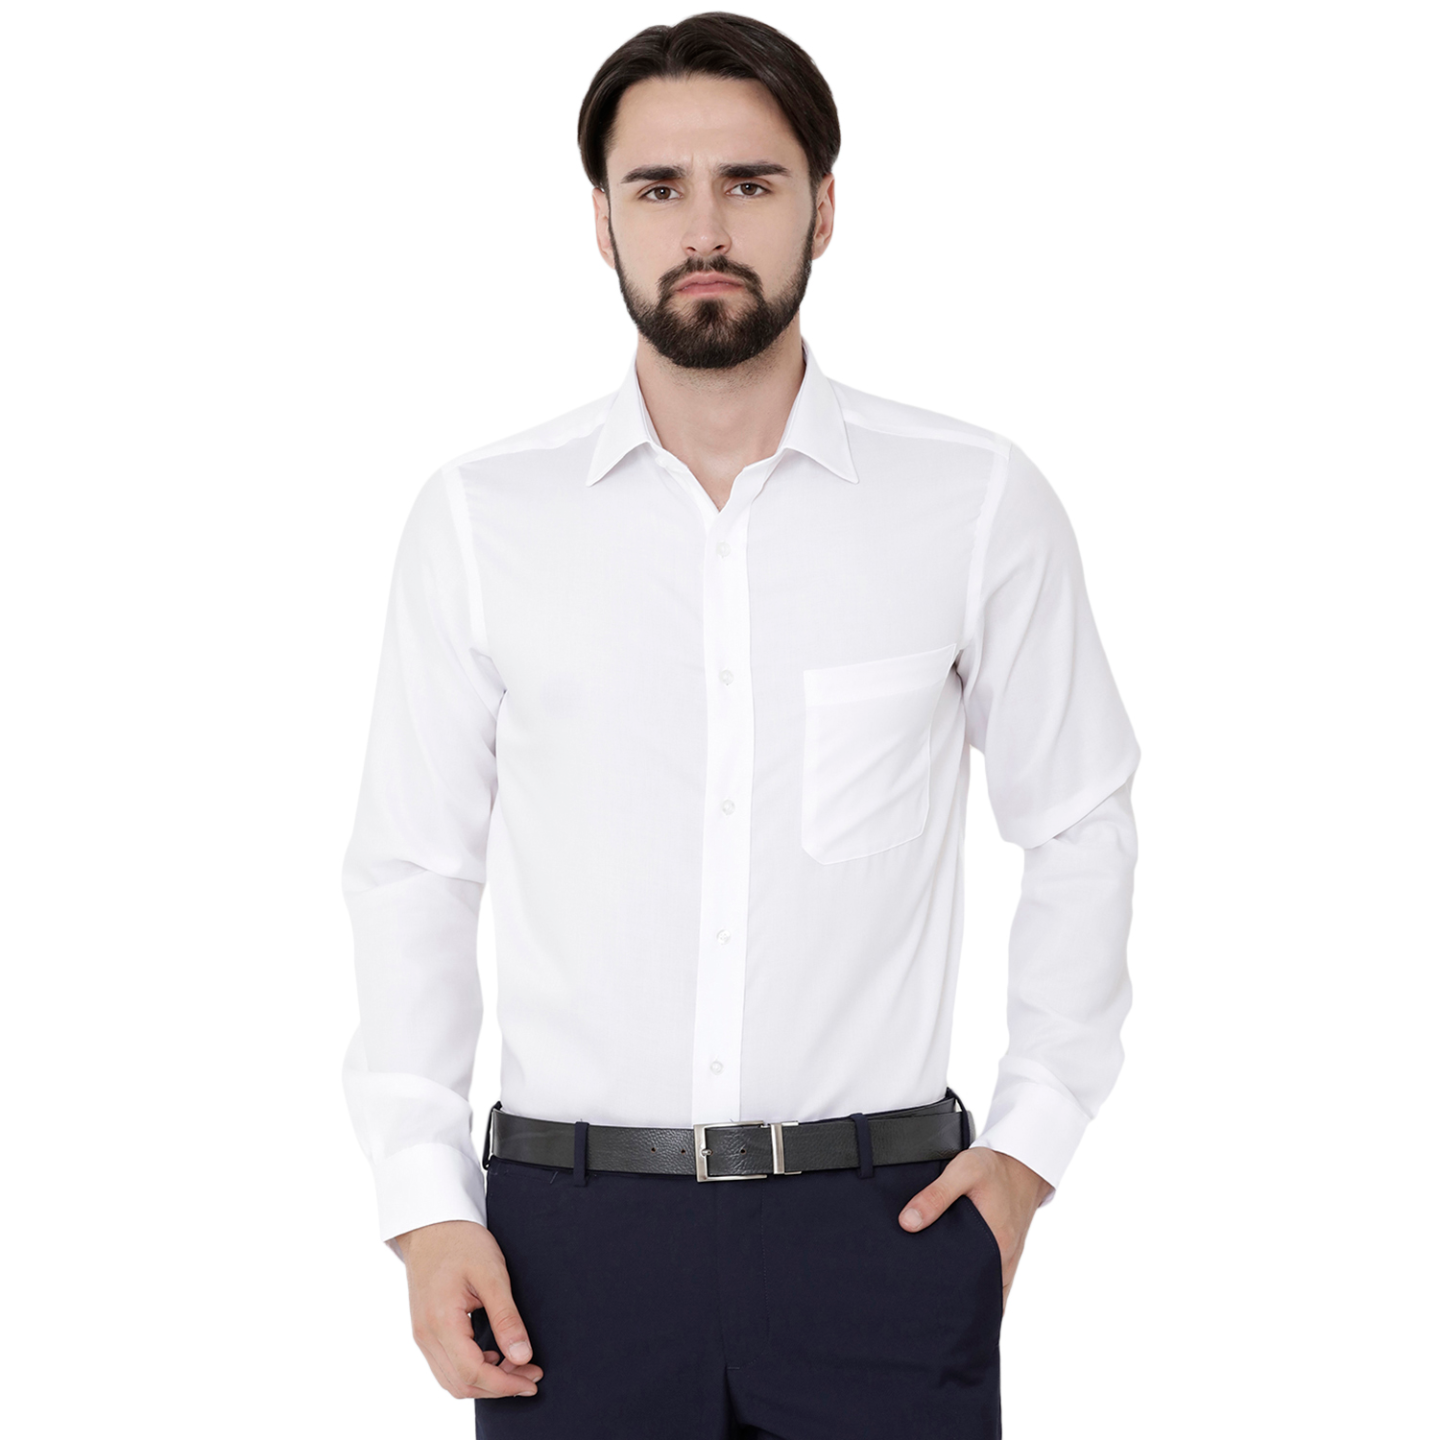 Double TWO Paradigm Mens Solid White Pure Cotton Non-Iron Shirt